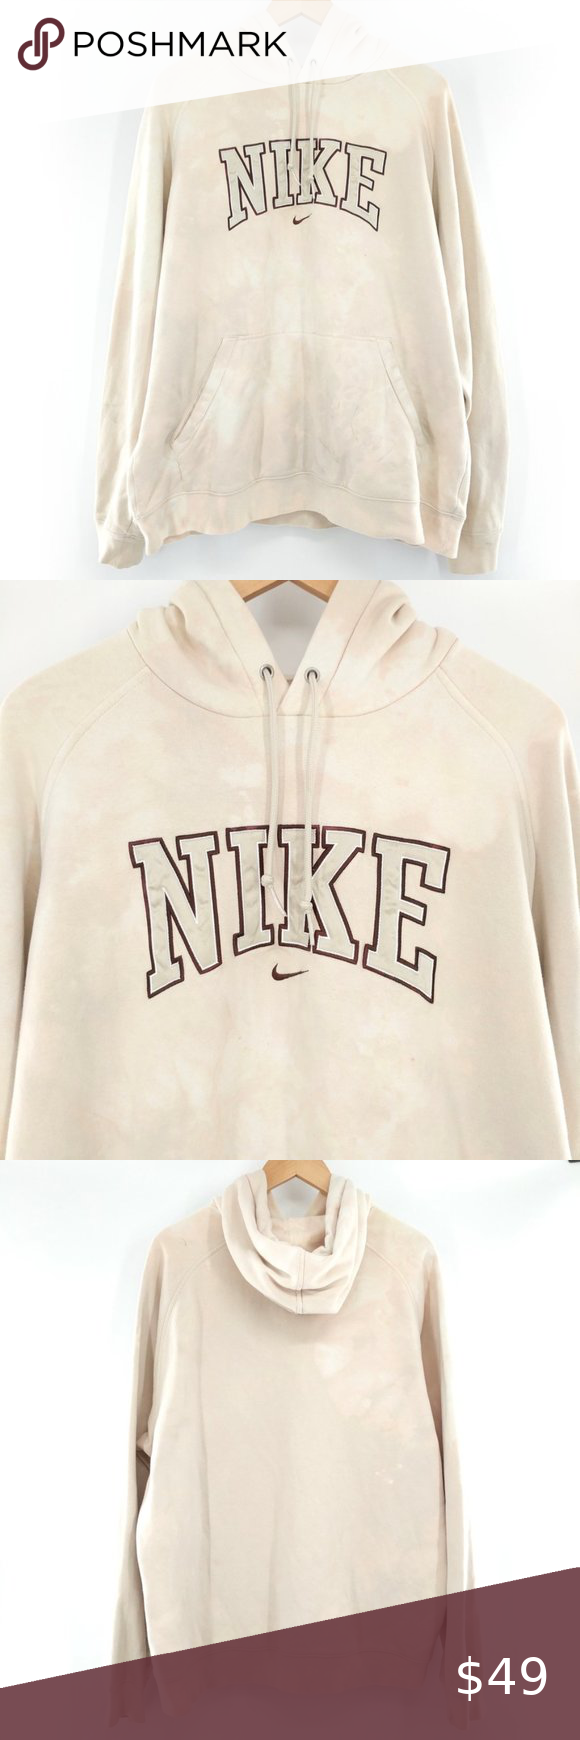 Nike Bleached Distressed Tie Dye Pullover Hoodie Pullover Hoodie Pullover Sweatshirt Shirt [ 1740 x 580 Pixel ]